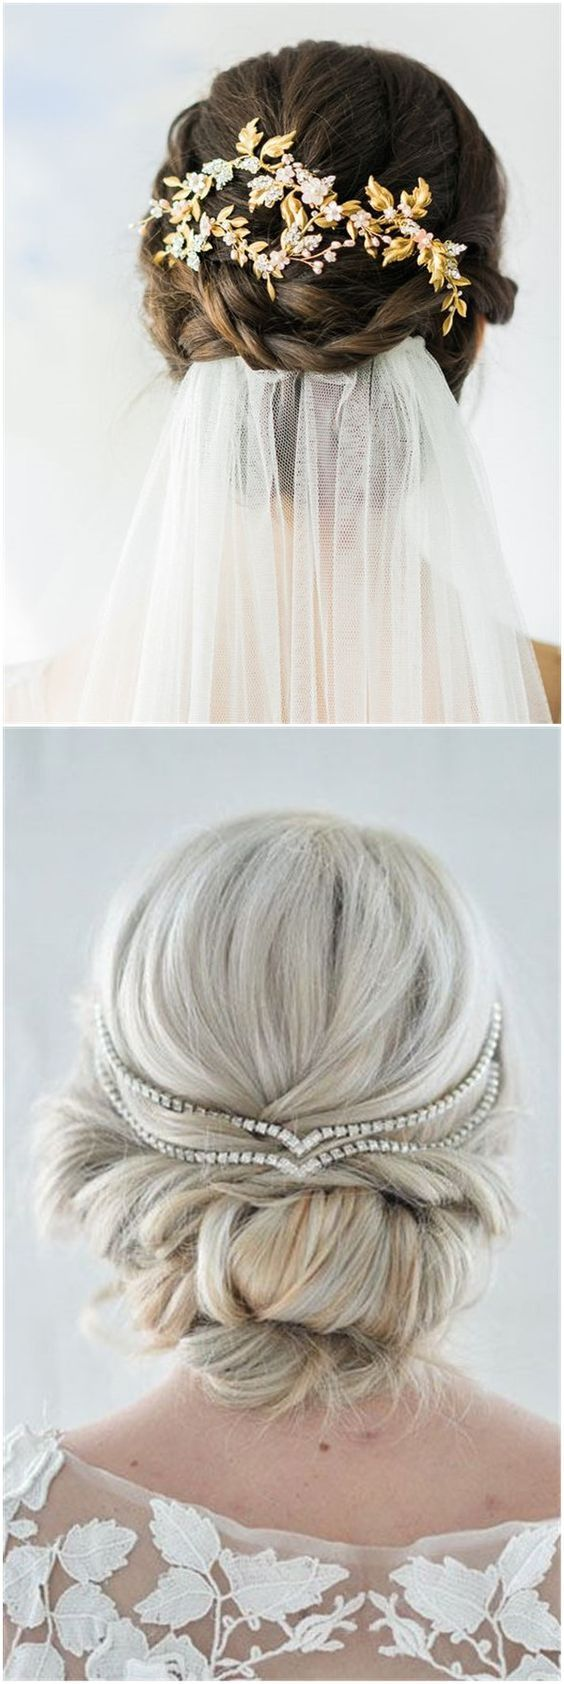 Bridal Hair Accessories Mother Of The Bride